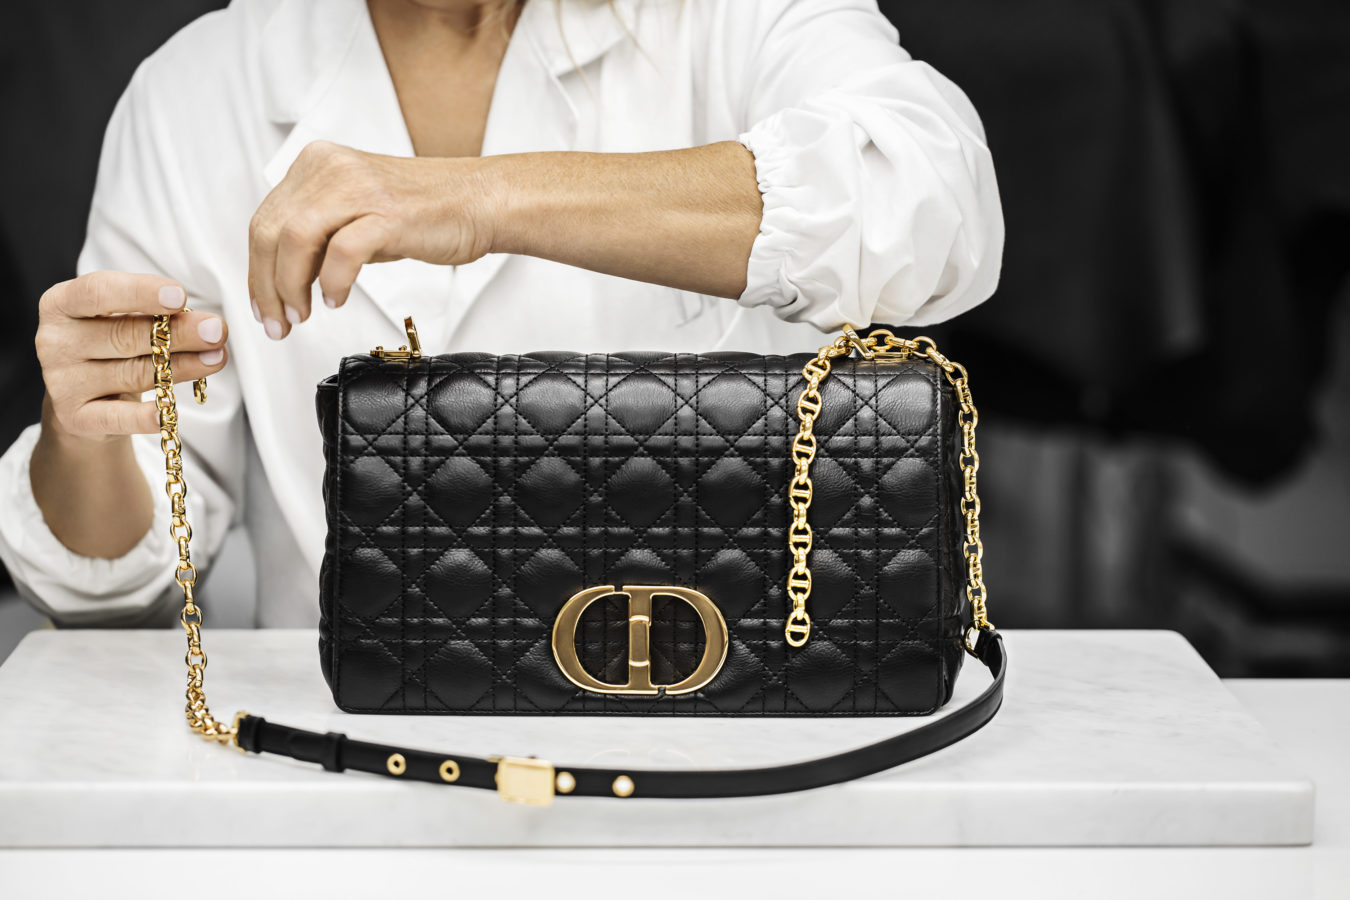 Up your style game this 2021 with the new Dior Caro bag